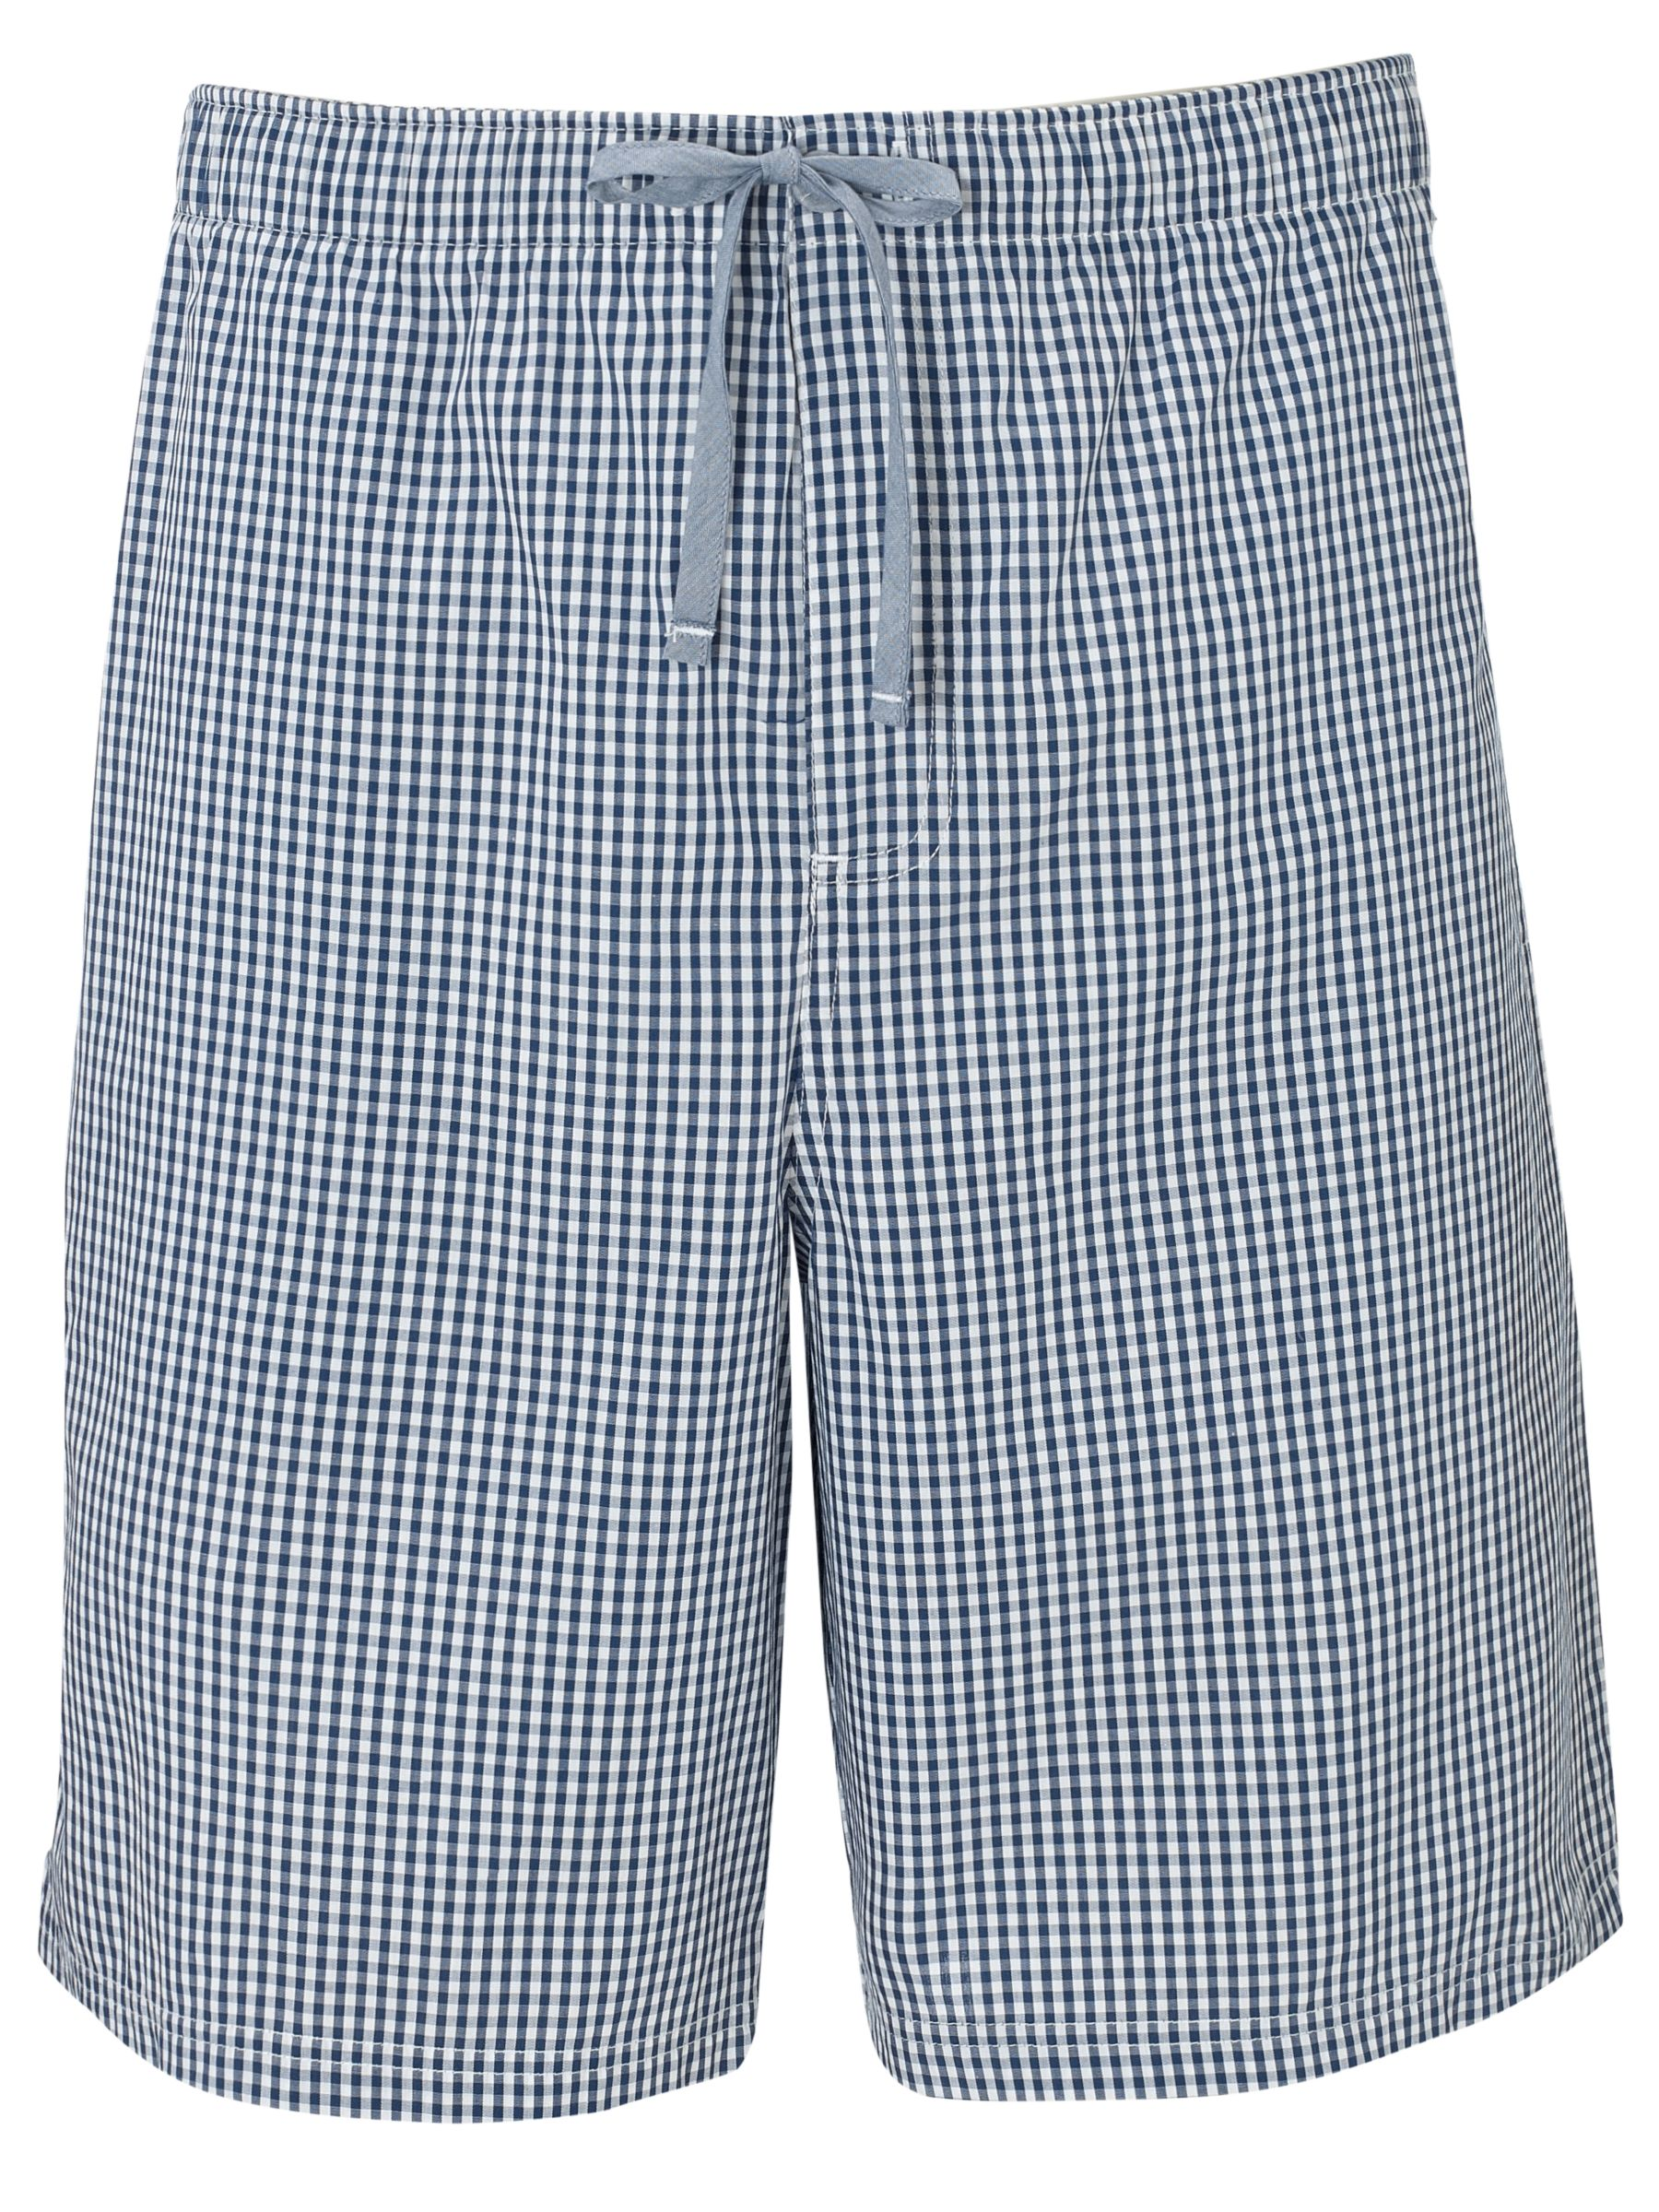 John Lewis Check Lounge Shorts, Blue/White